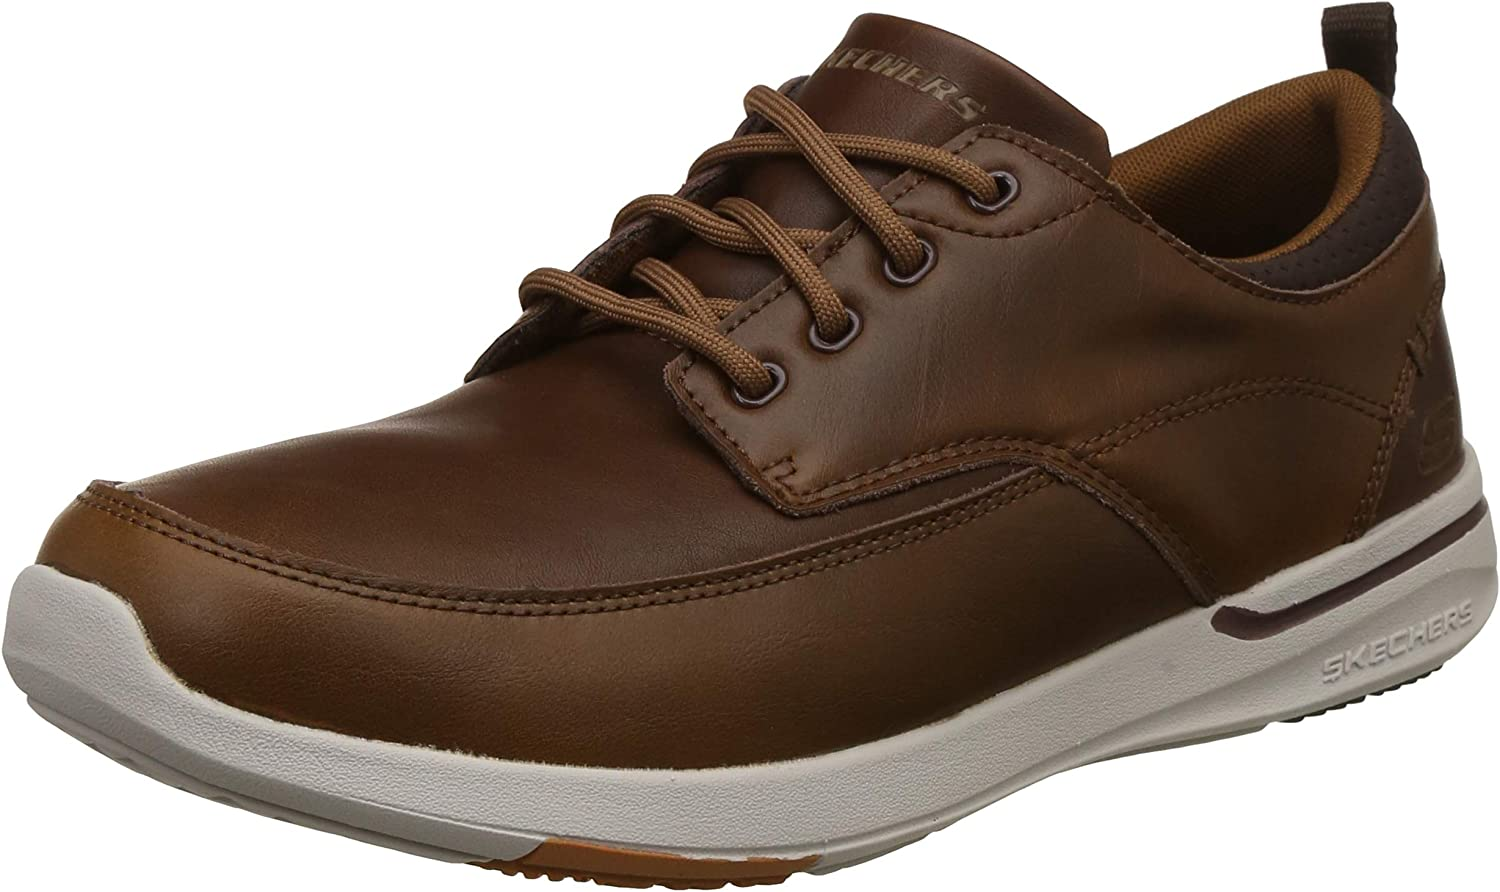 Skechers Mens Elent Leven Moc Toe Leather shoes in Brown- Lace Fastening- Smooth